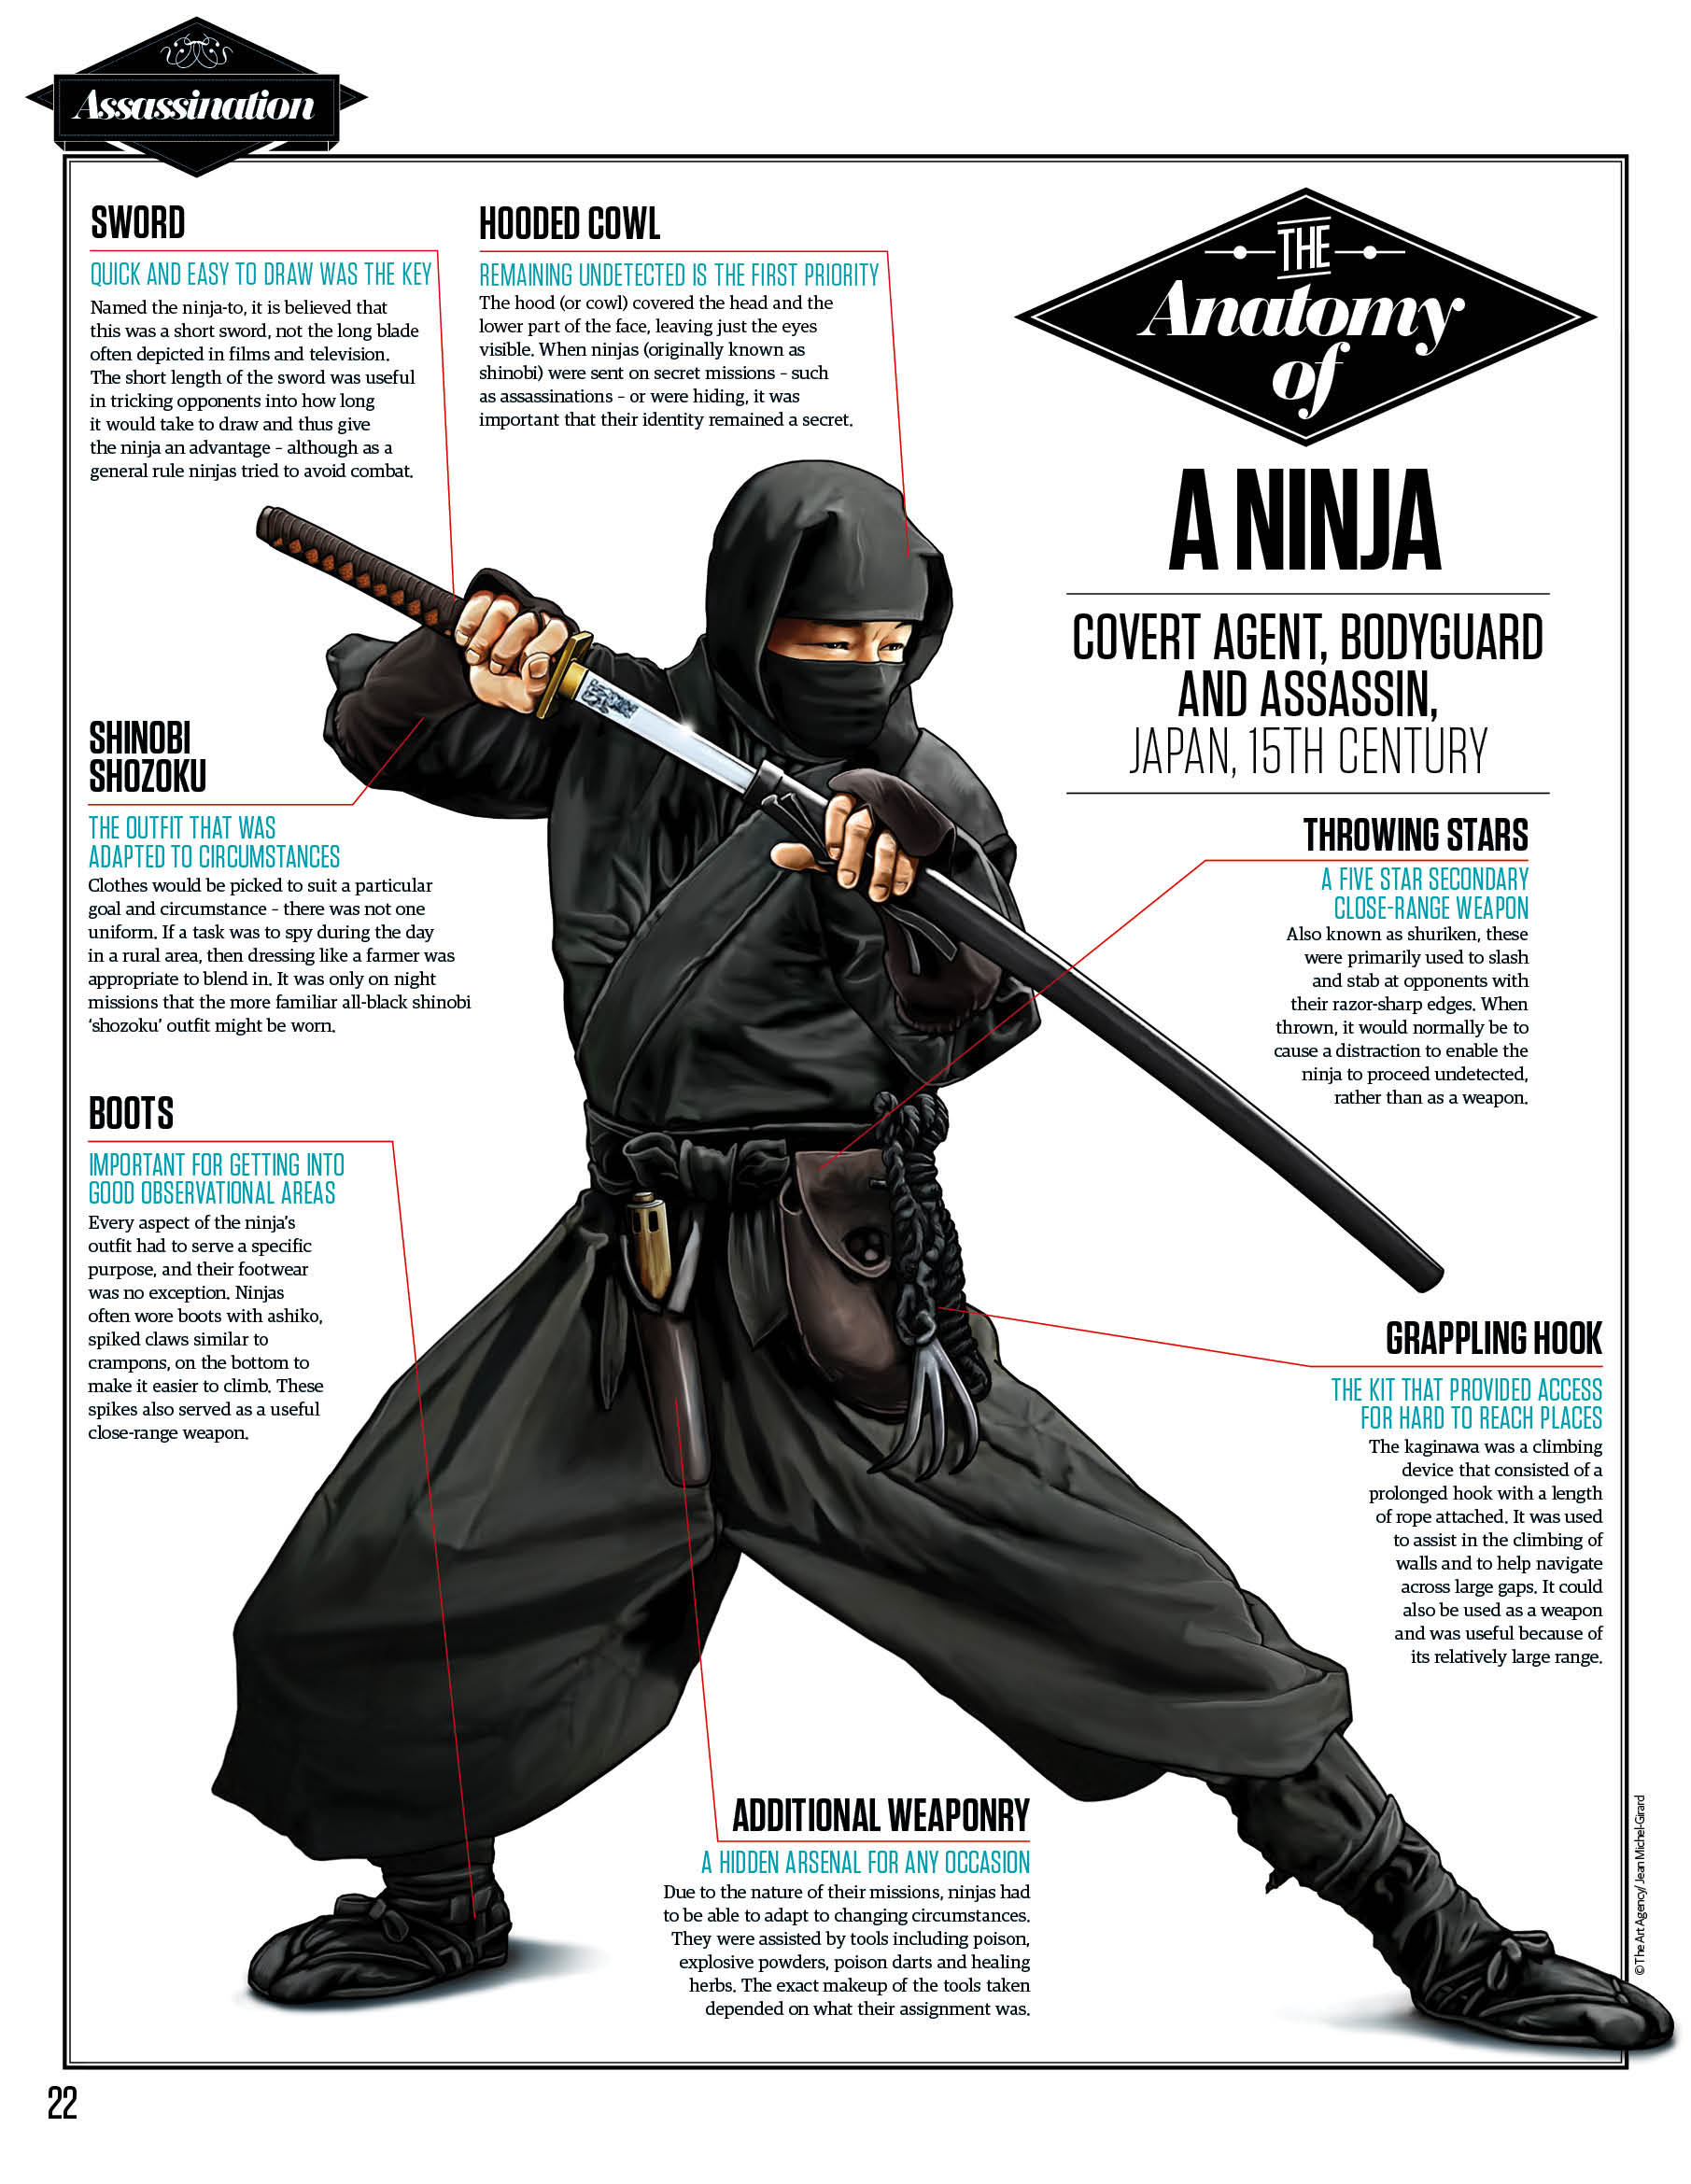 NINJA! - Shinobi, Kunoichi & the history of Ninjutsu